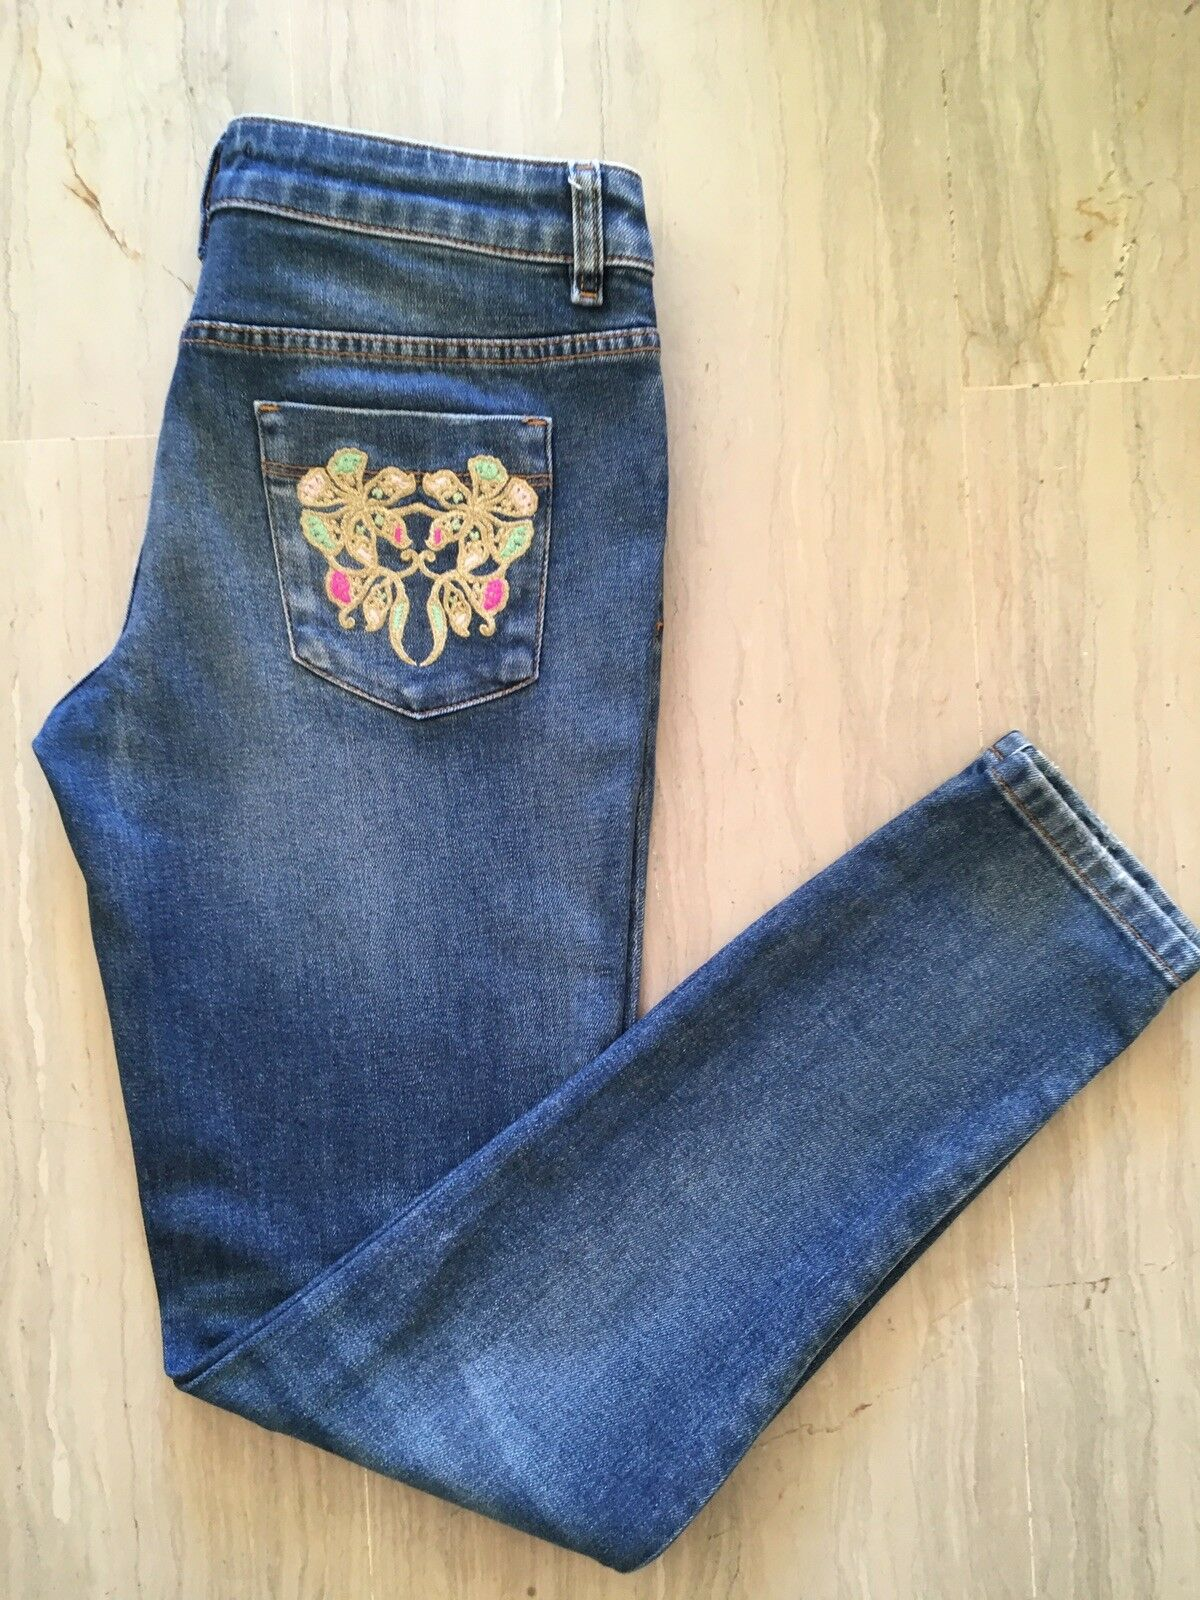 JUST CAVALLI Boyfriend bluee Jeans Distressed Floral Embroidery W29